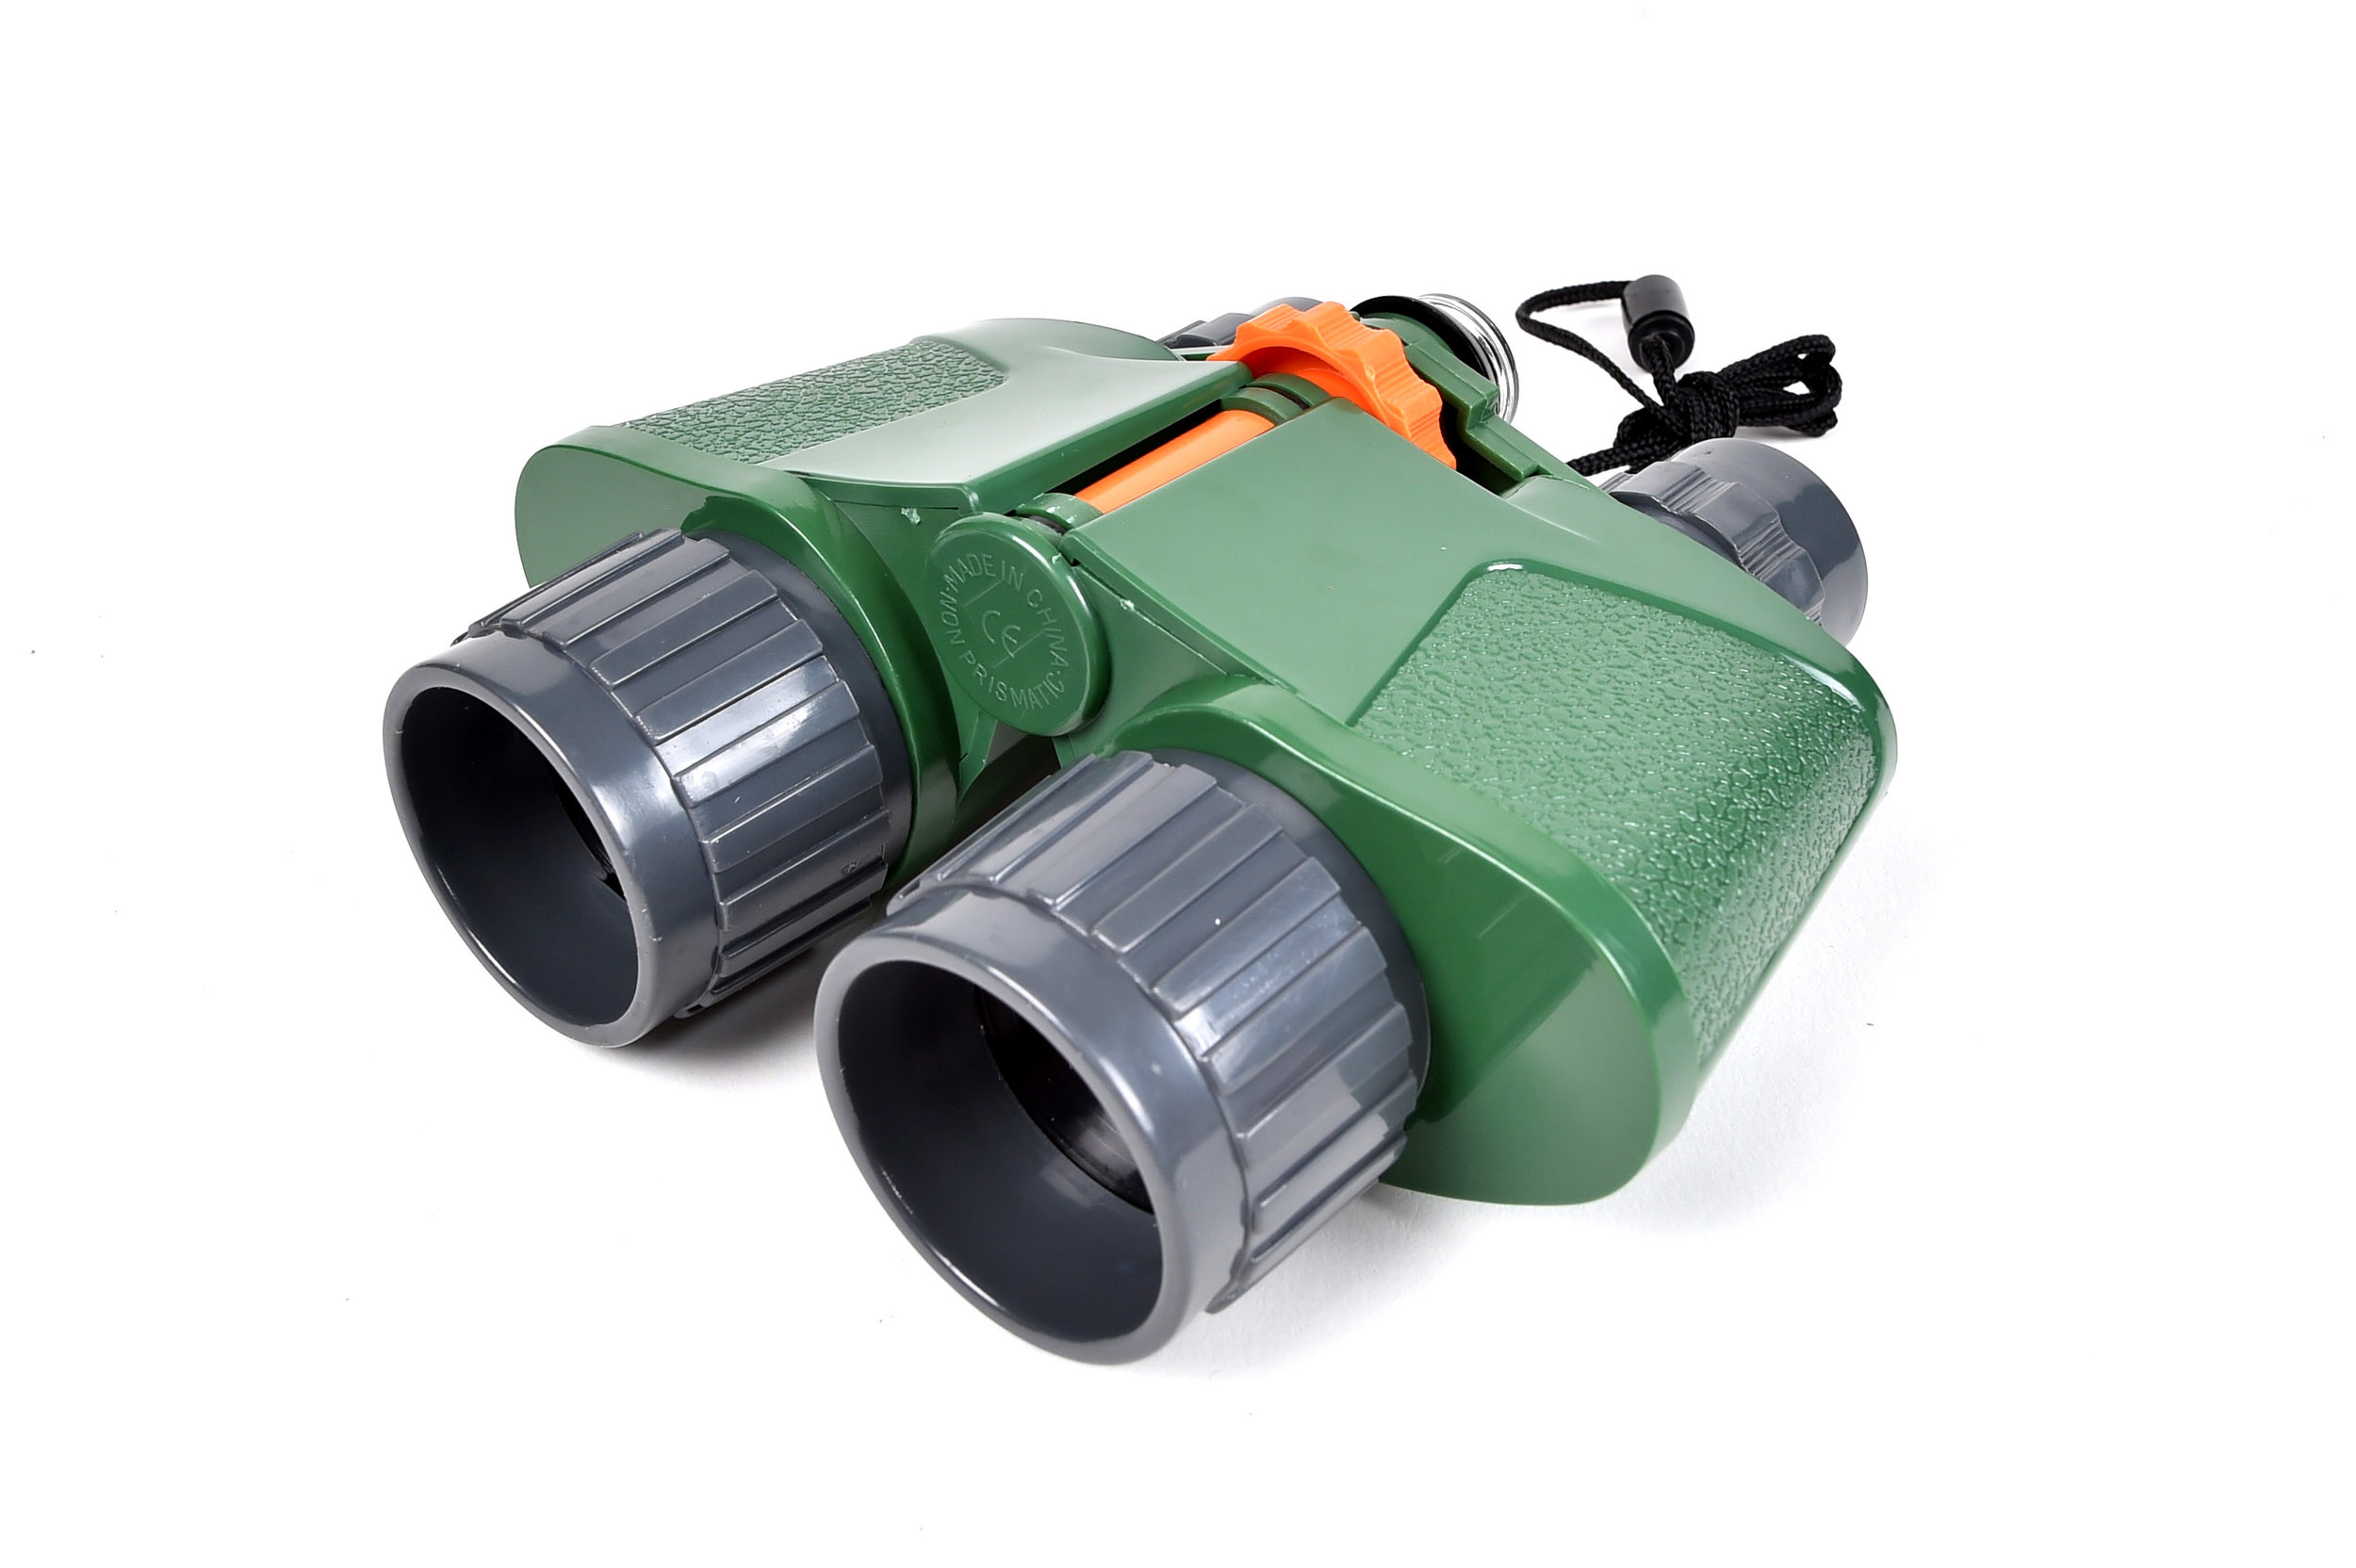 Maxx Action Adventure Binoculars with Built-In Compass